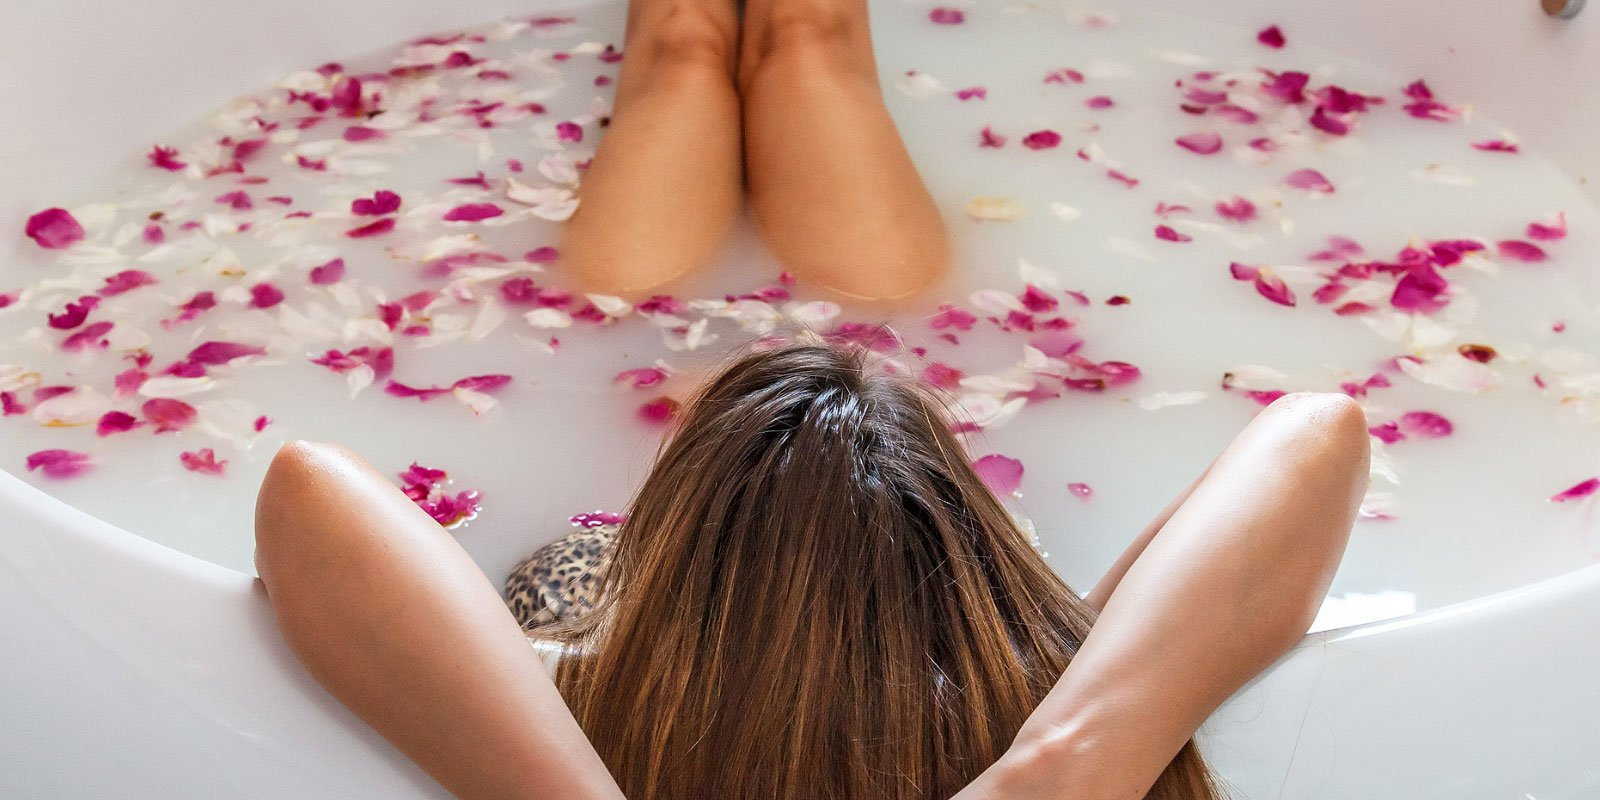 Easy DIY At-Home Bath and Body Spa Treatments